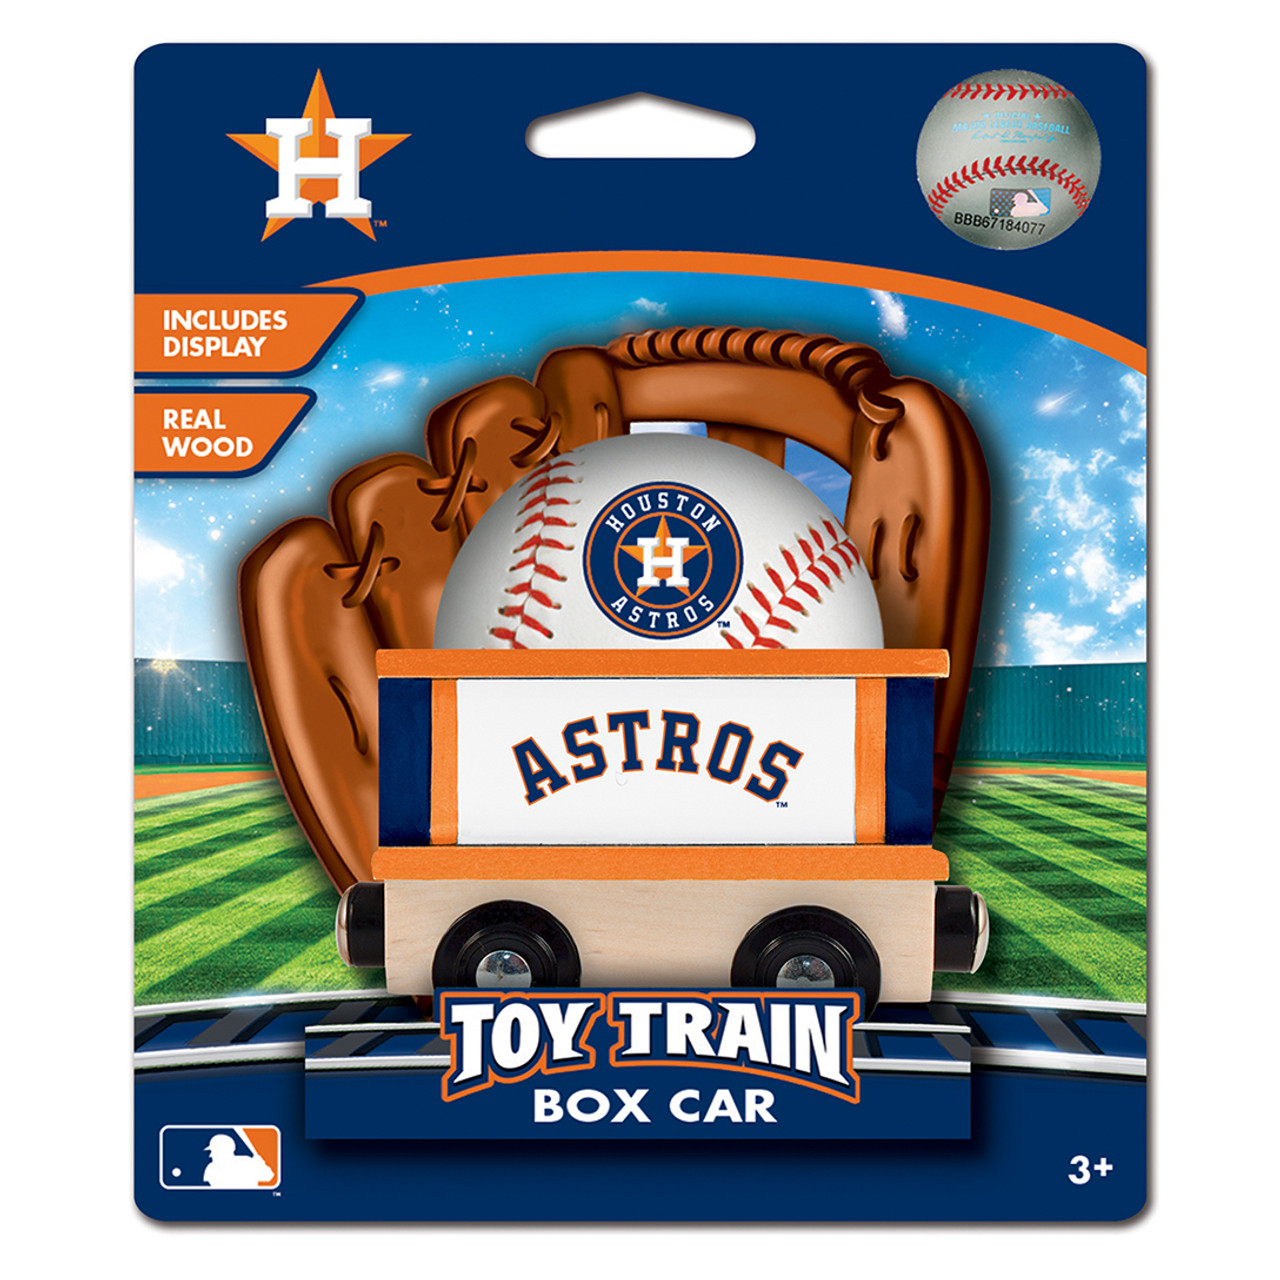 Houston Astros Mlb Box Car Trains